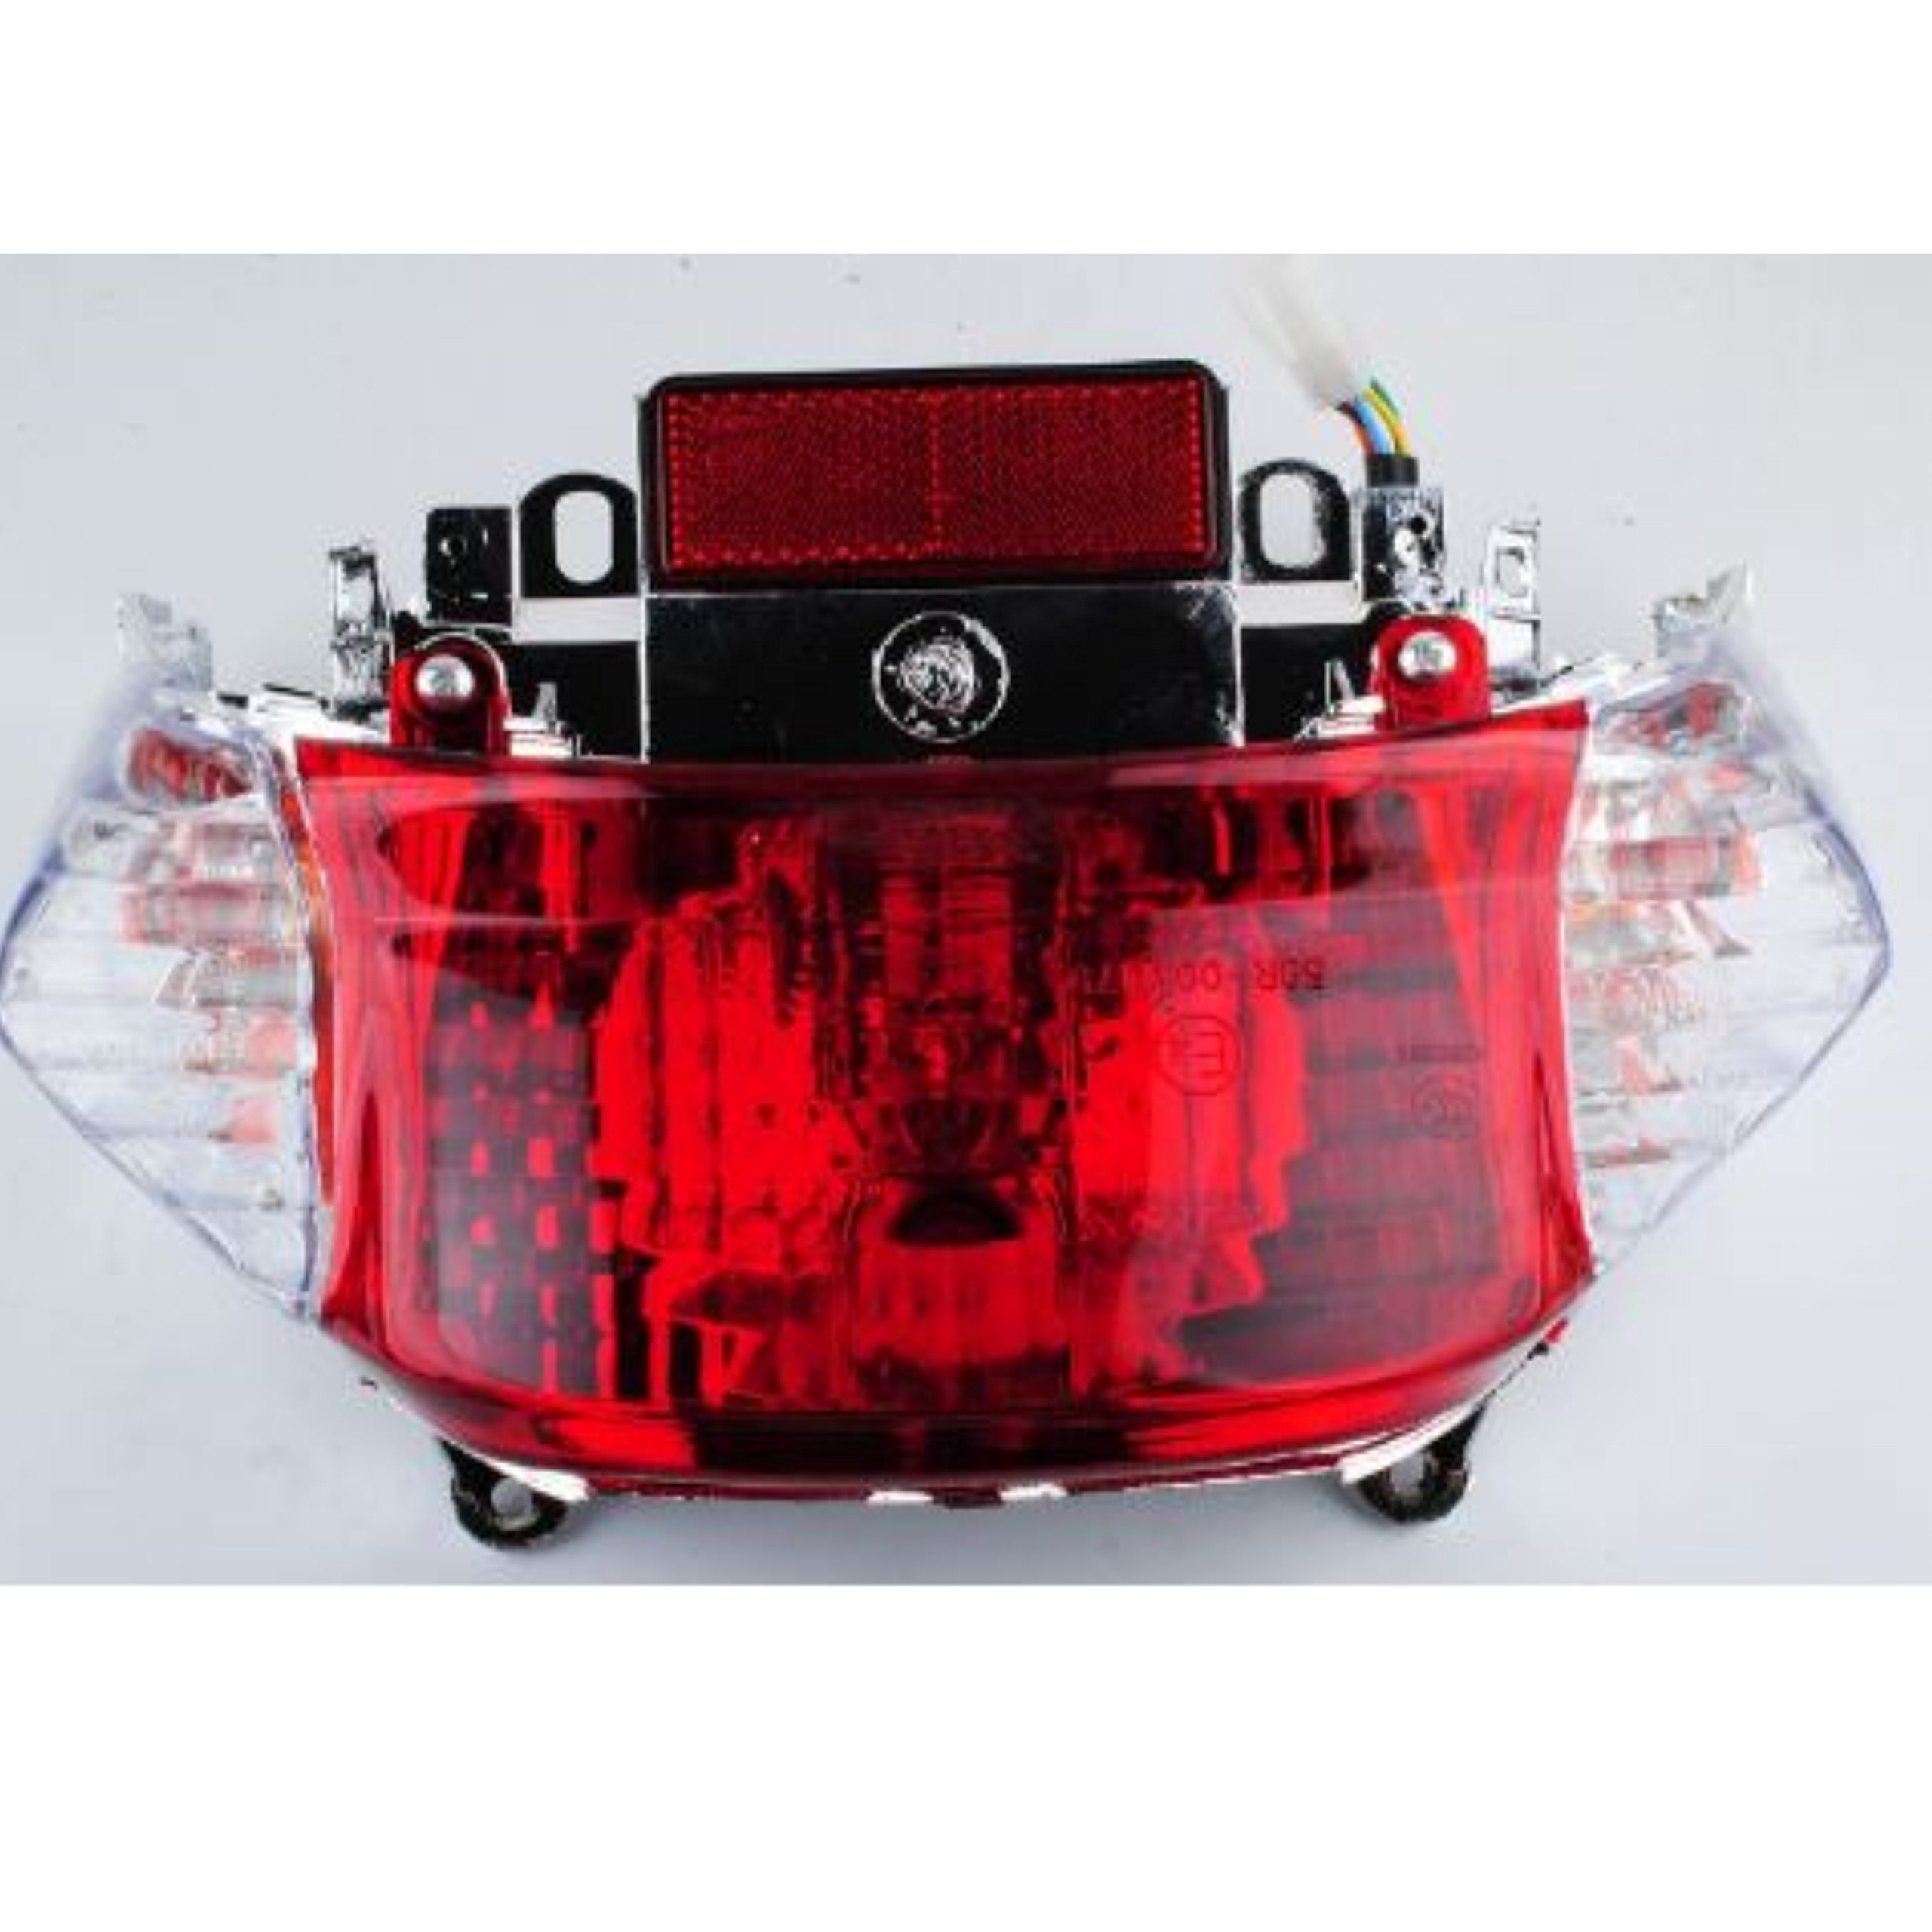 GY6 50cc Scooter Tail Light Assembly Chinese Scooter Parts Tao Tao Peace Sports